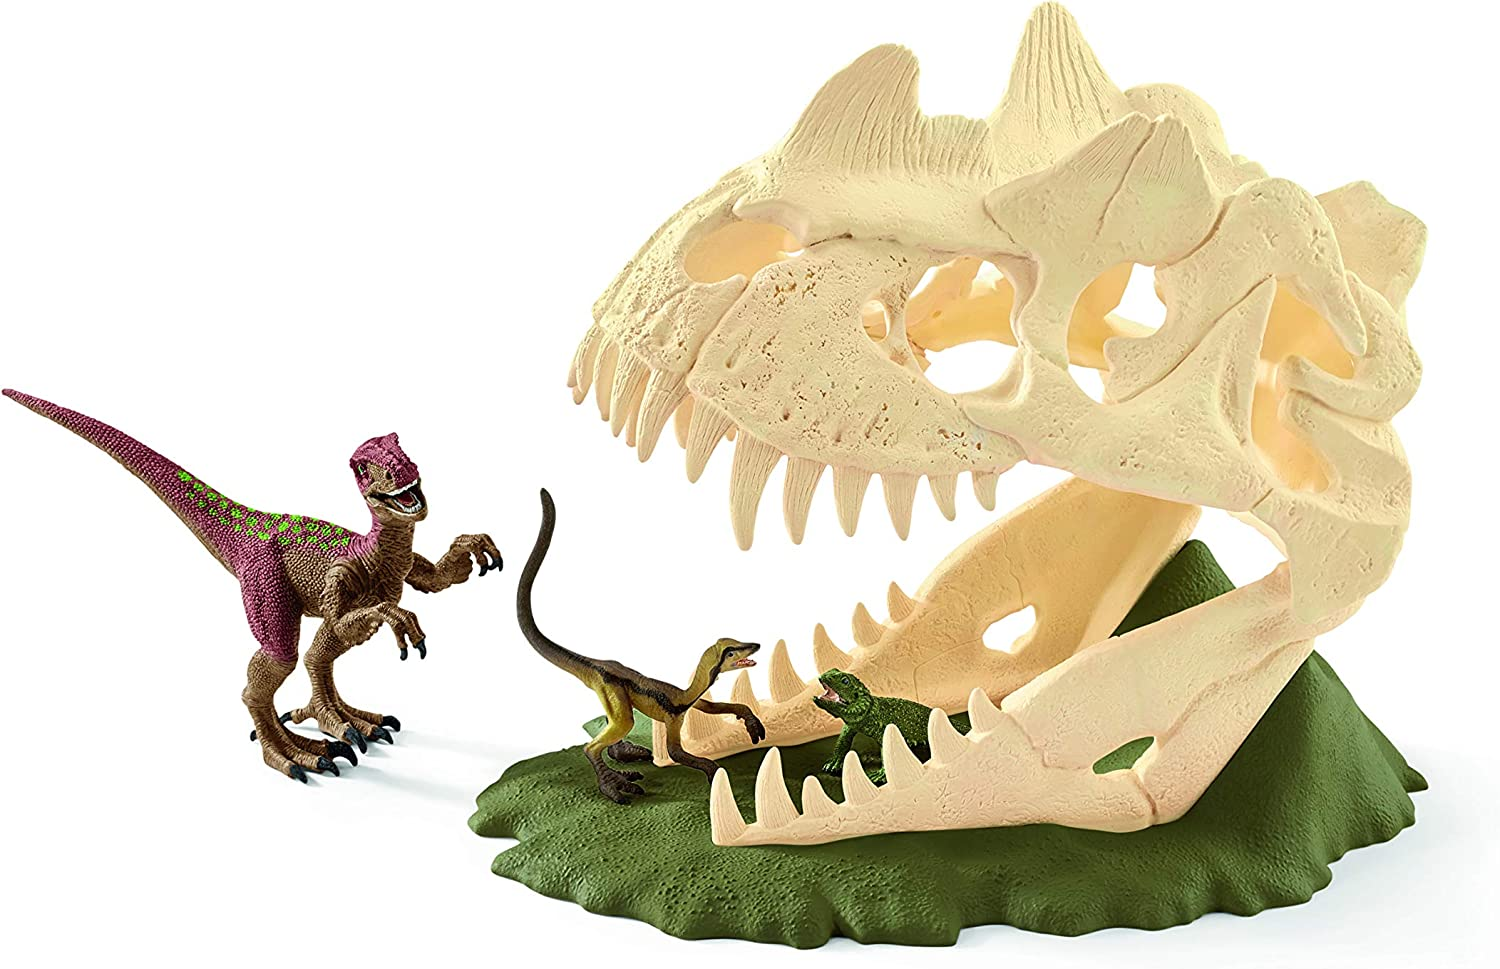 Schleich SC42348 Large Skull Trap with Velociraptor Playset